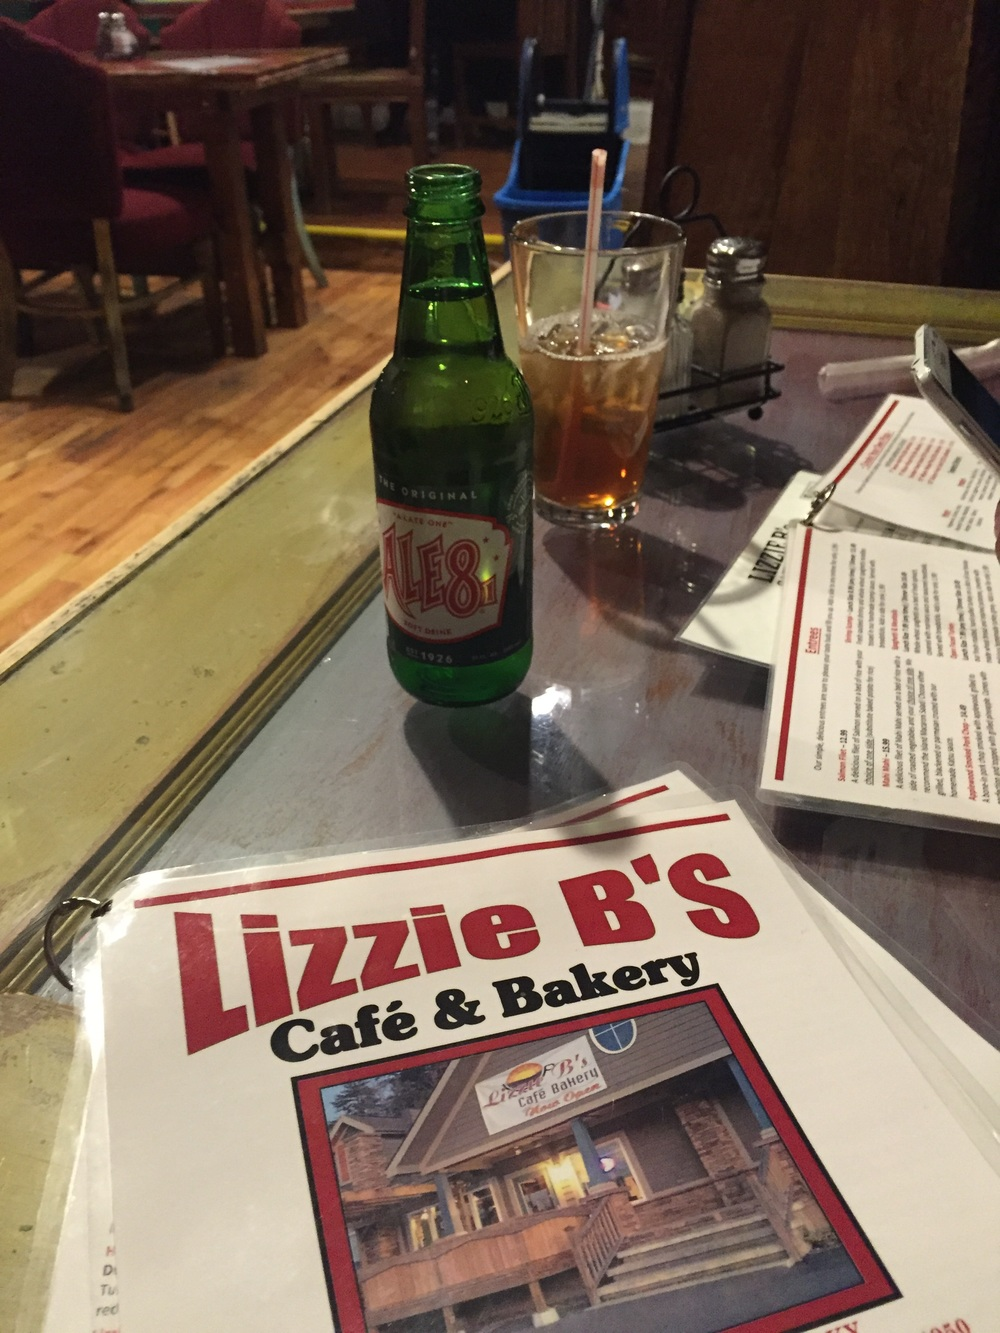 We hit up Lizzie B's on our way home in Prestonsburg Ky